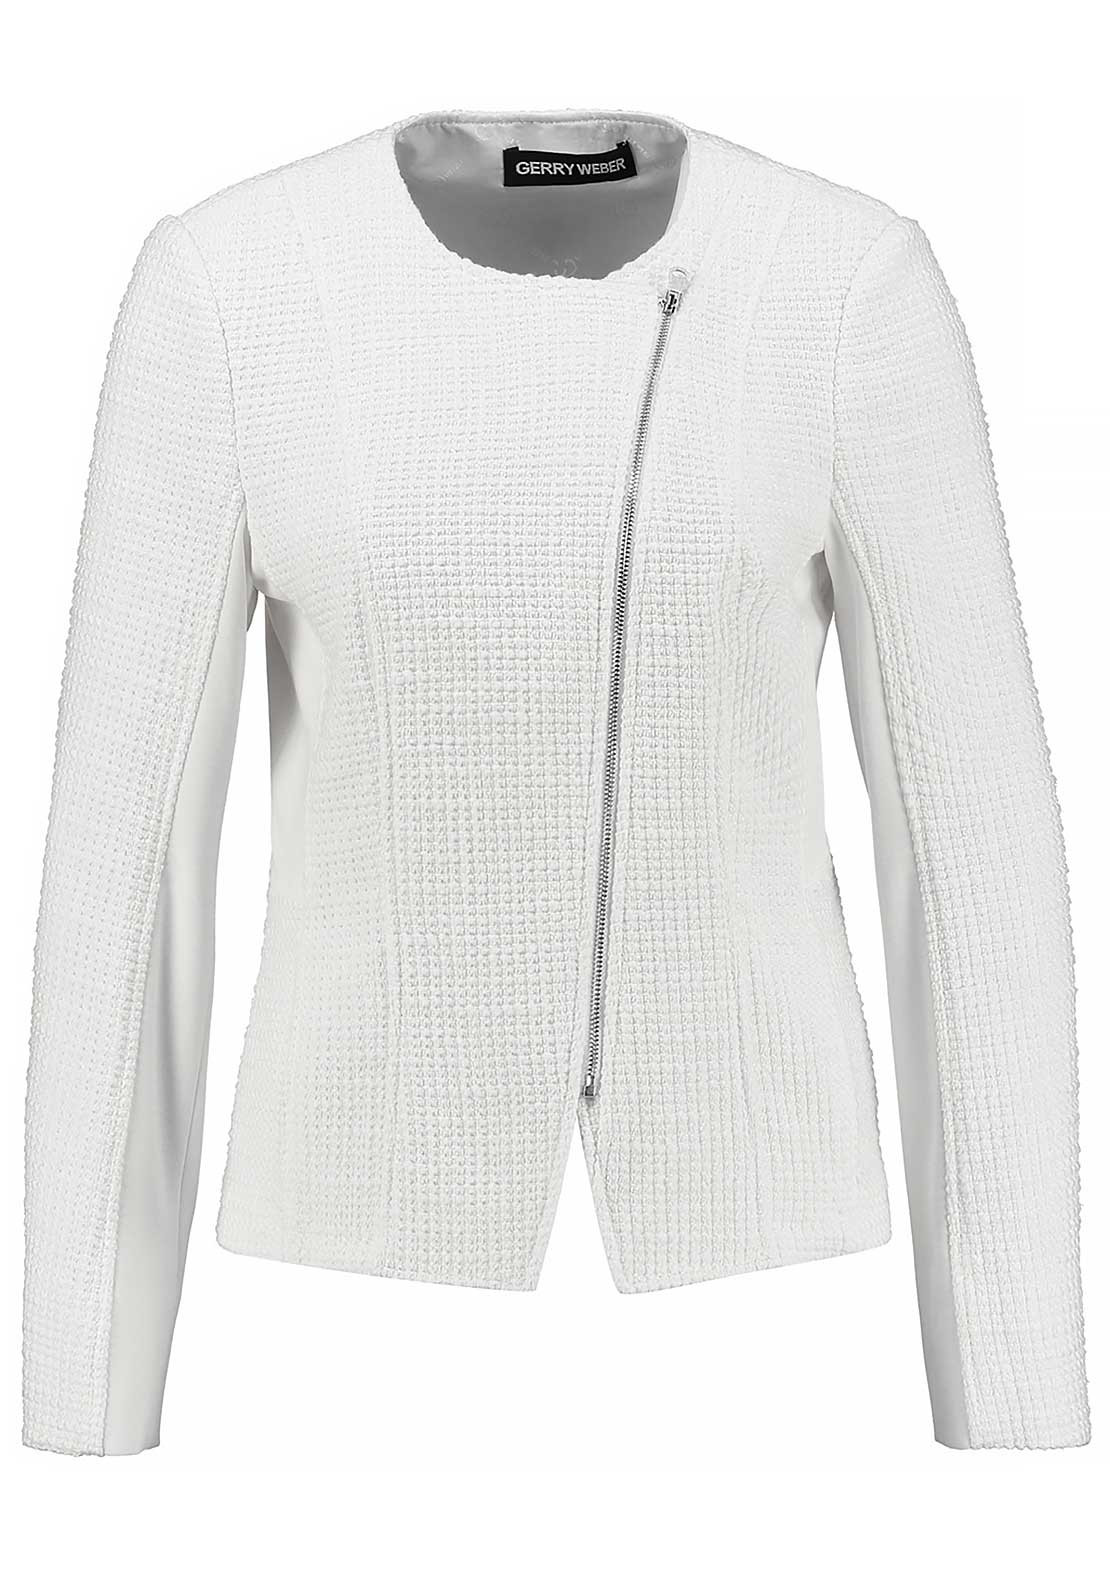 Gerry Weber Embossed Diagonal Zip Jacket, White